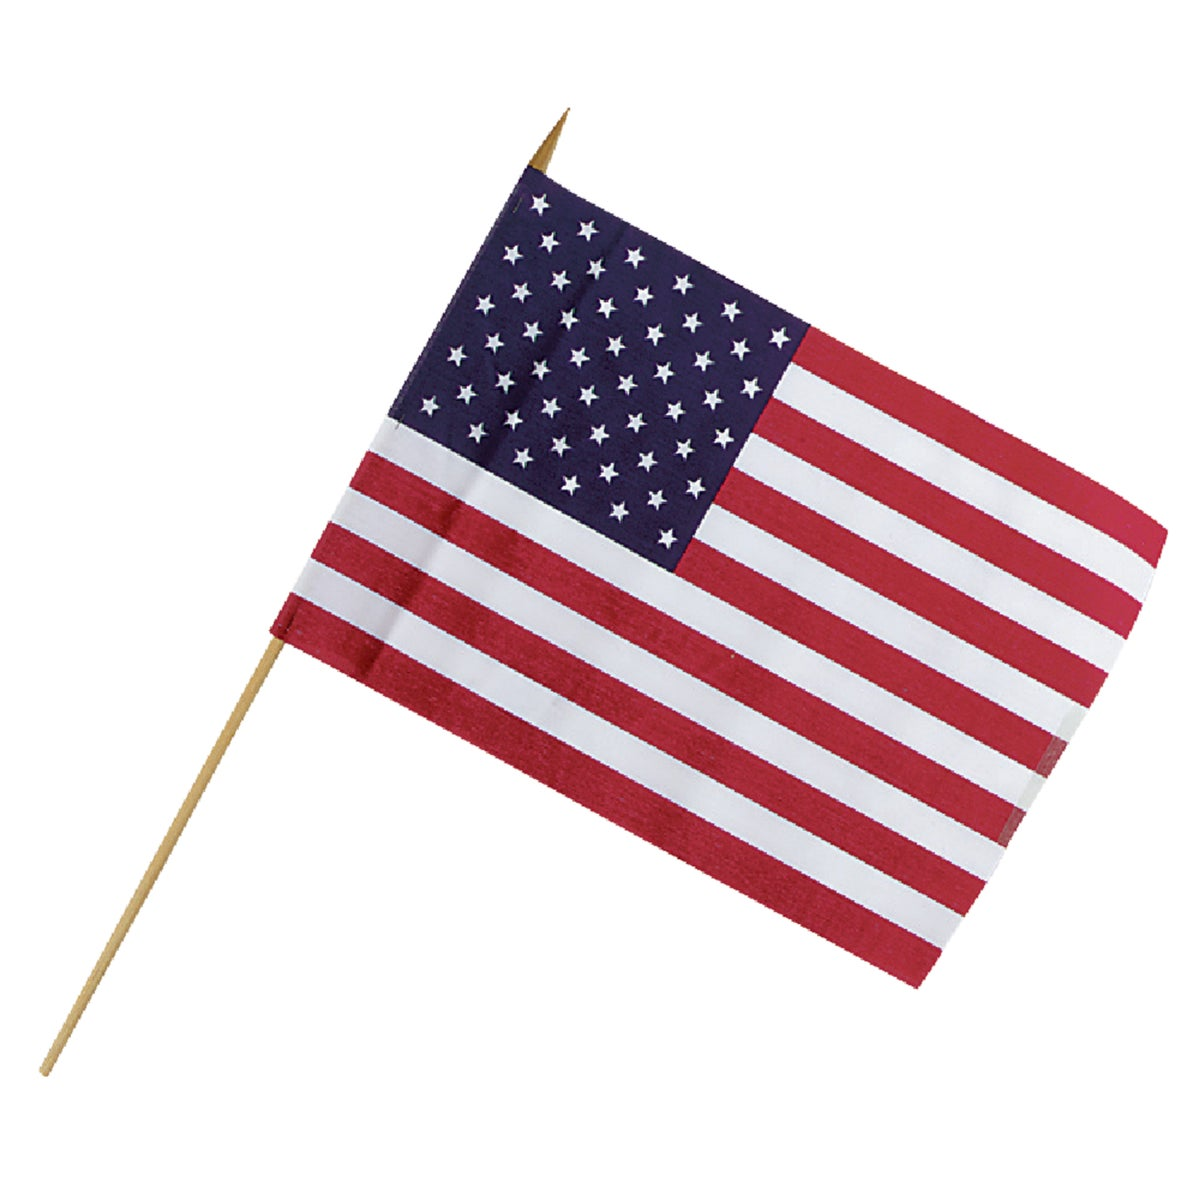 48PK 12X18 DSP CUP FLAG - USE12D by Valley Forge Flag